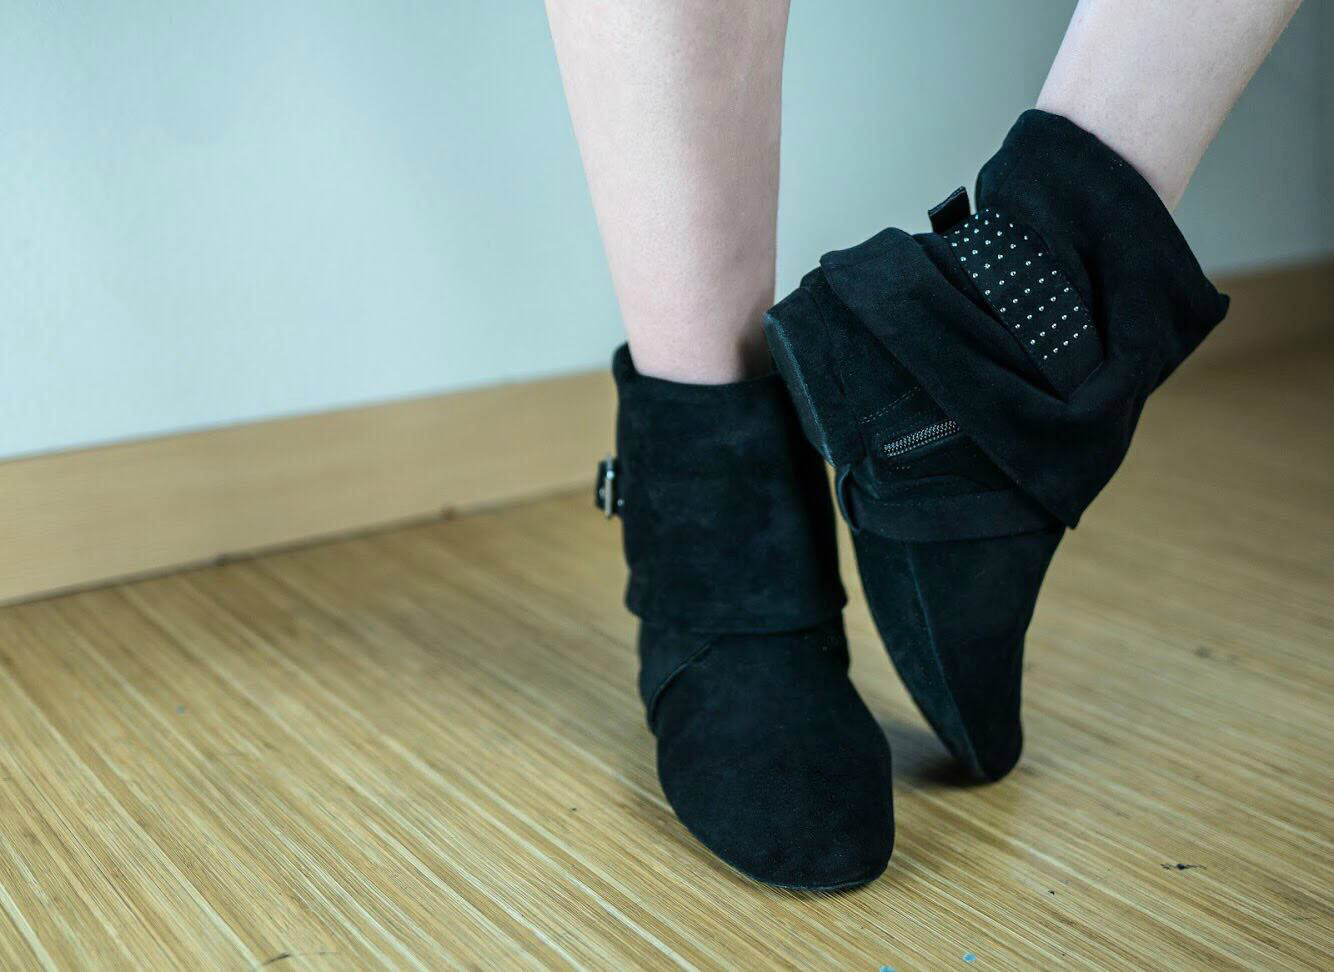 Aurora dance boots black pair folded down on wood floor